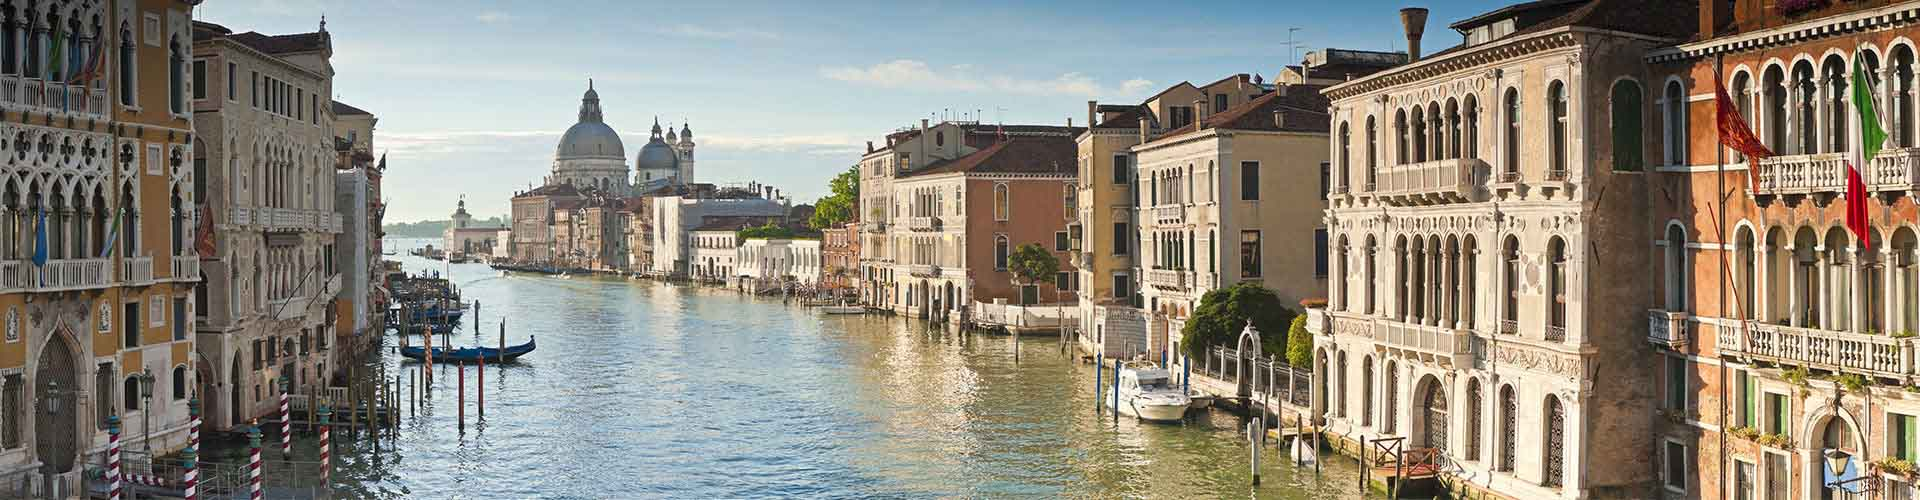 Venice – Hostels in the Quartiere Dorsoduro,S. Polo,S. Croce,Giudecca,Sacca Fisola district. Maps for Venice, Photos and Reviews for each hostel in Venice.